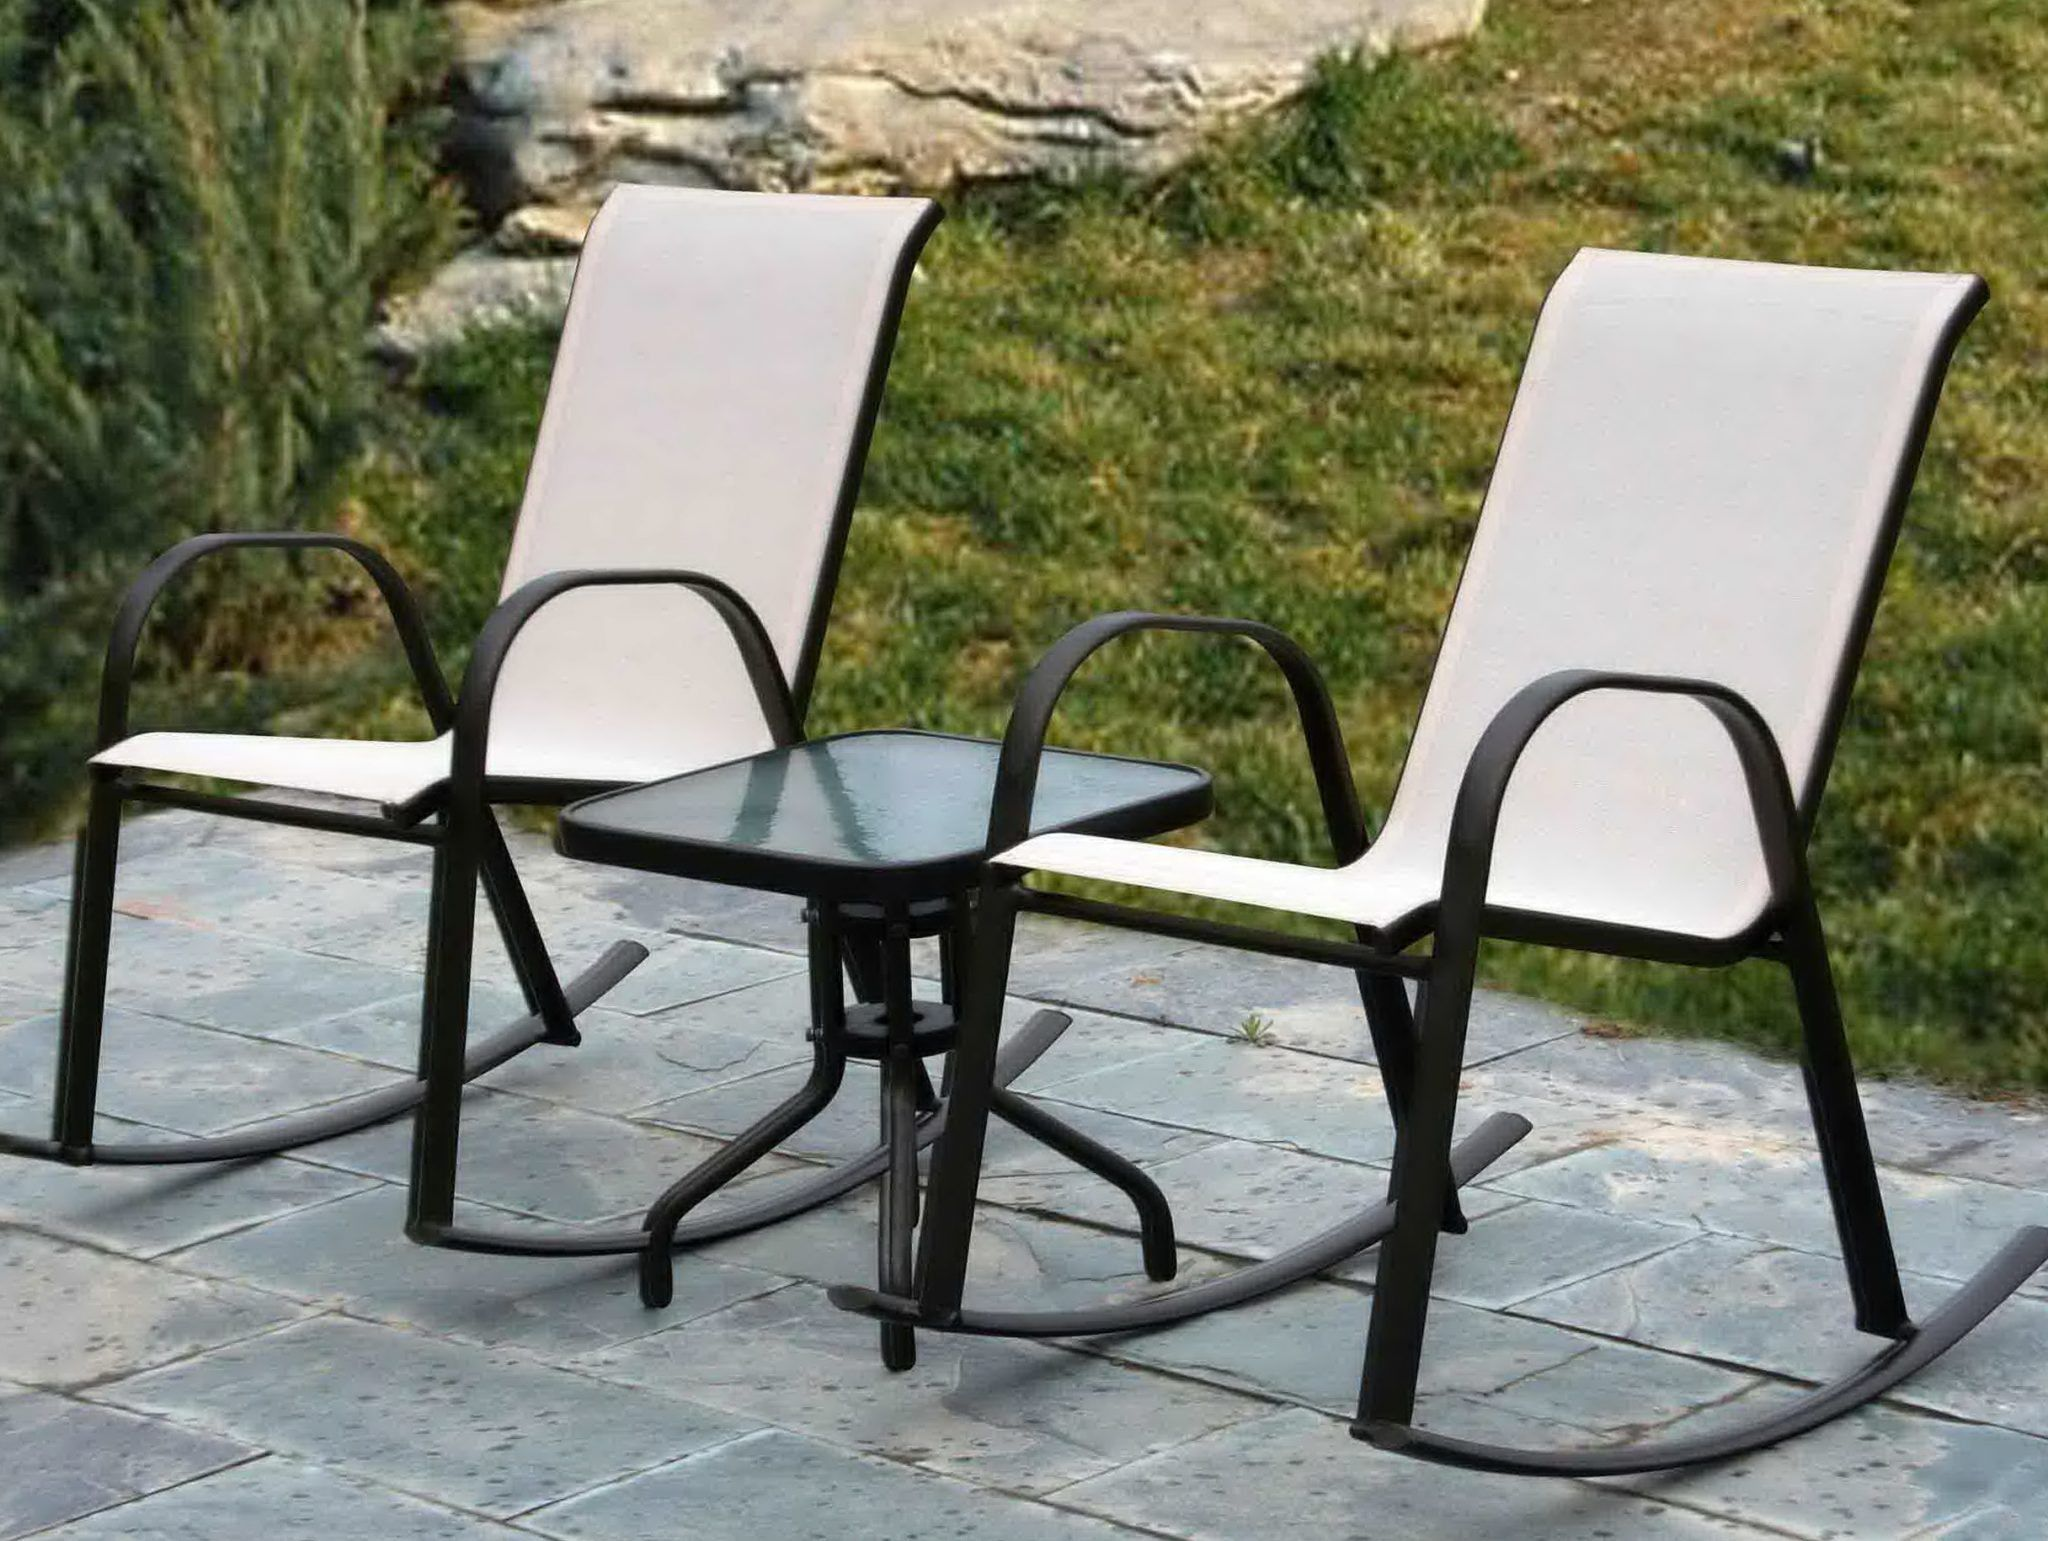 Comfortable Patio Furniture Without Cushions Comfortable Patio Furniture Patio Furniture Cushions Patio Furniture